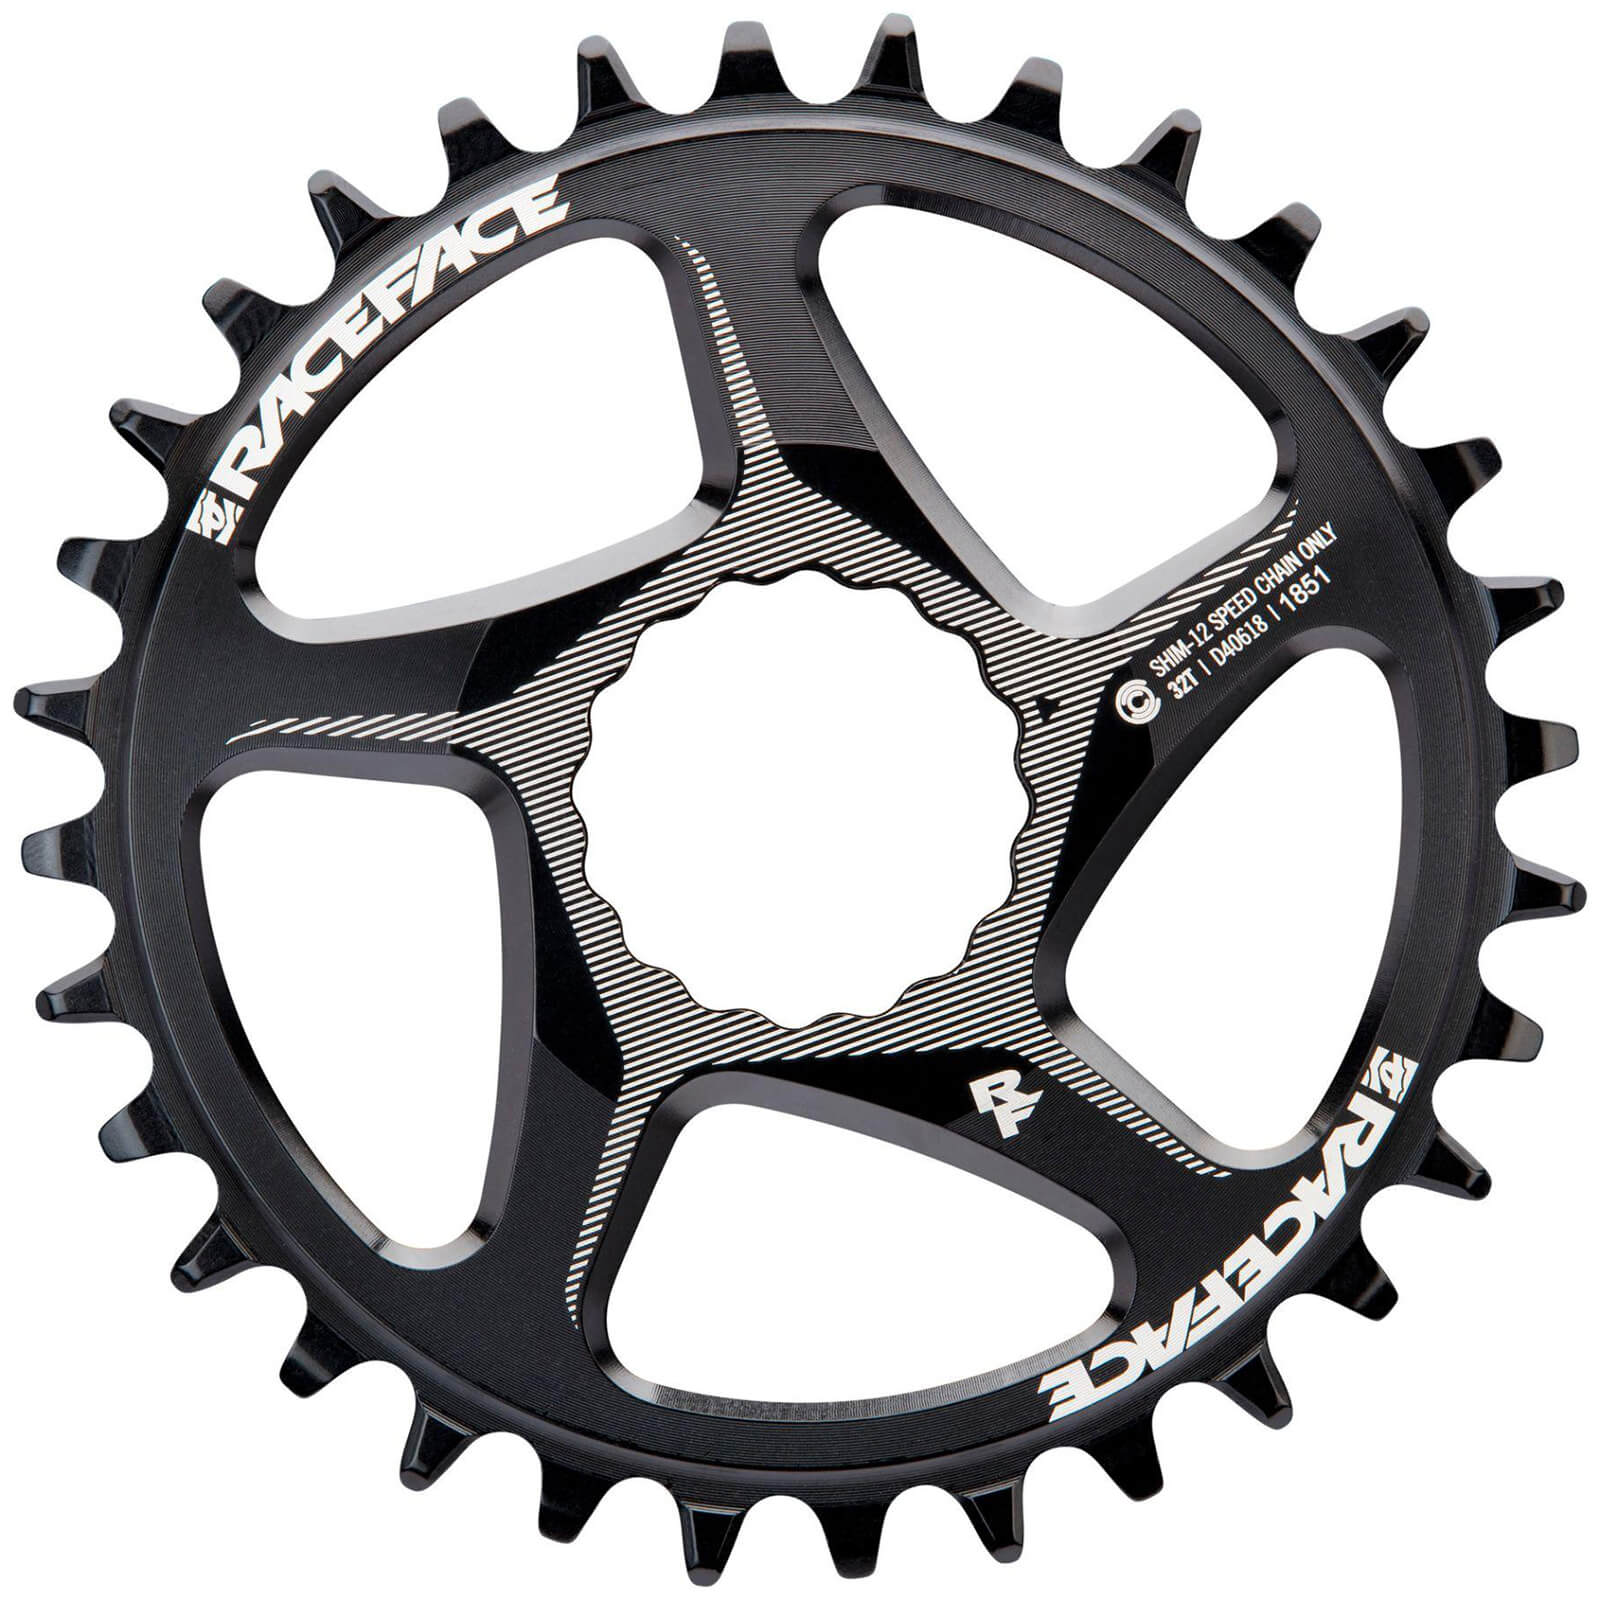 Race Face Direct Mount Narrow Wide 12 Speed Shimano Chainring - 32T